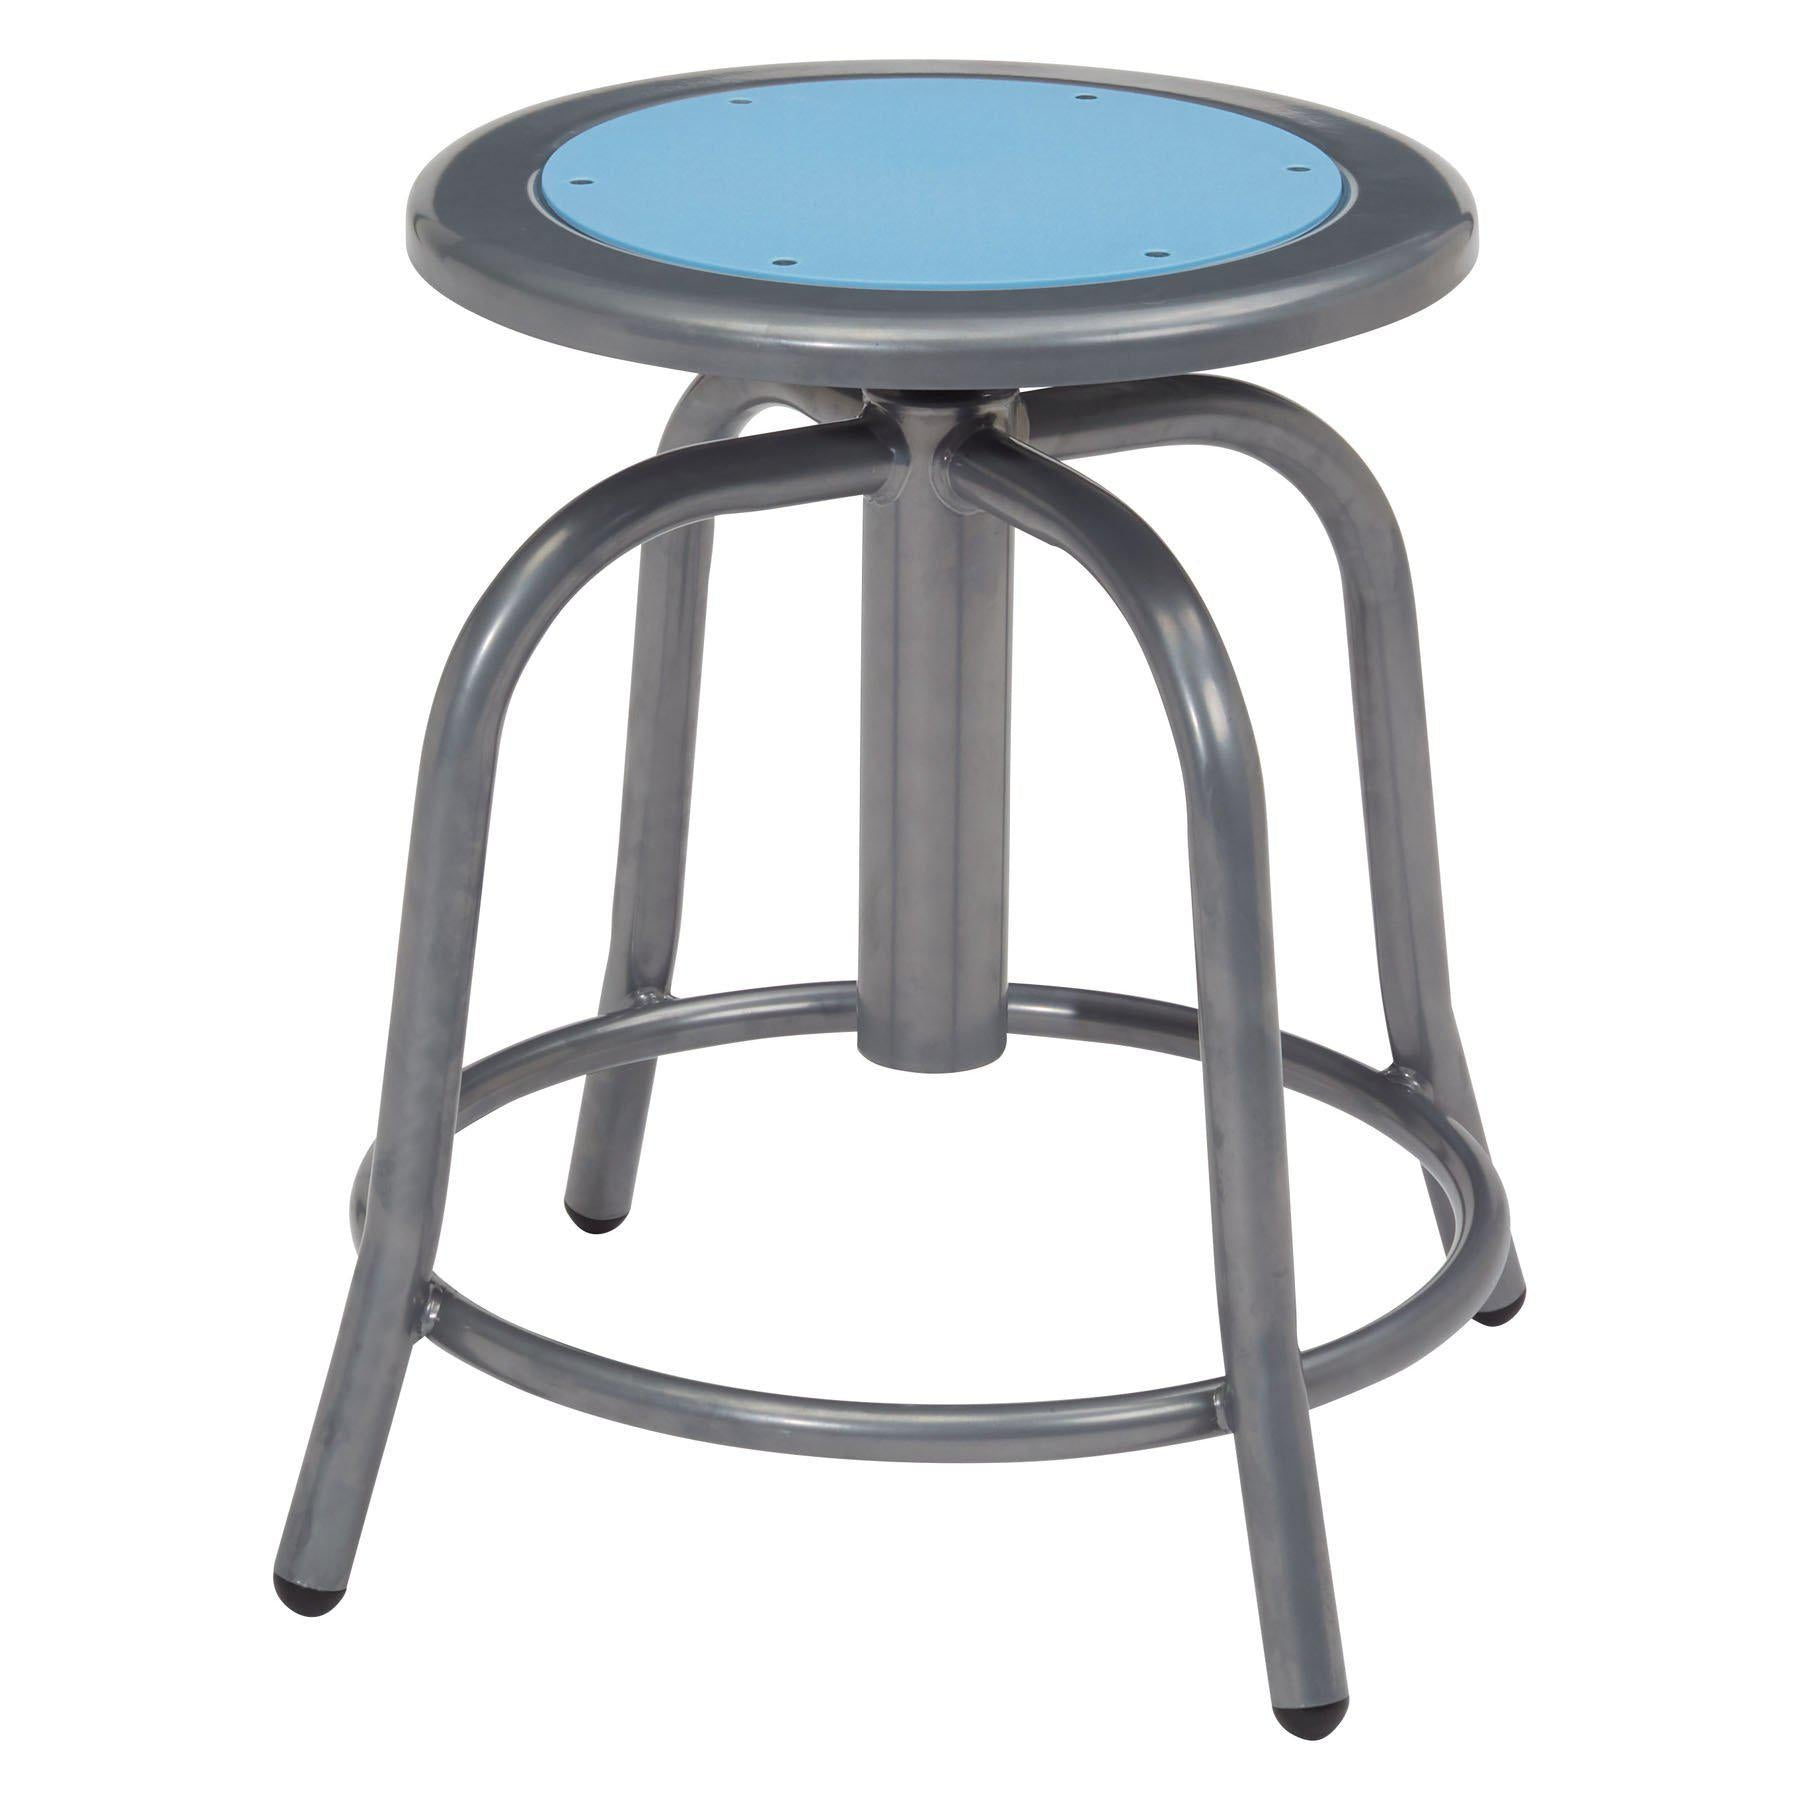 "18"" - 24"" Height Adjustable Swivel Stool-Stools-Blueberry Seat/Grey Frame-"